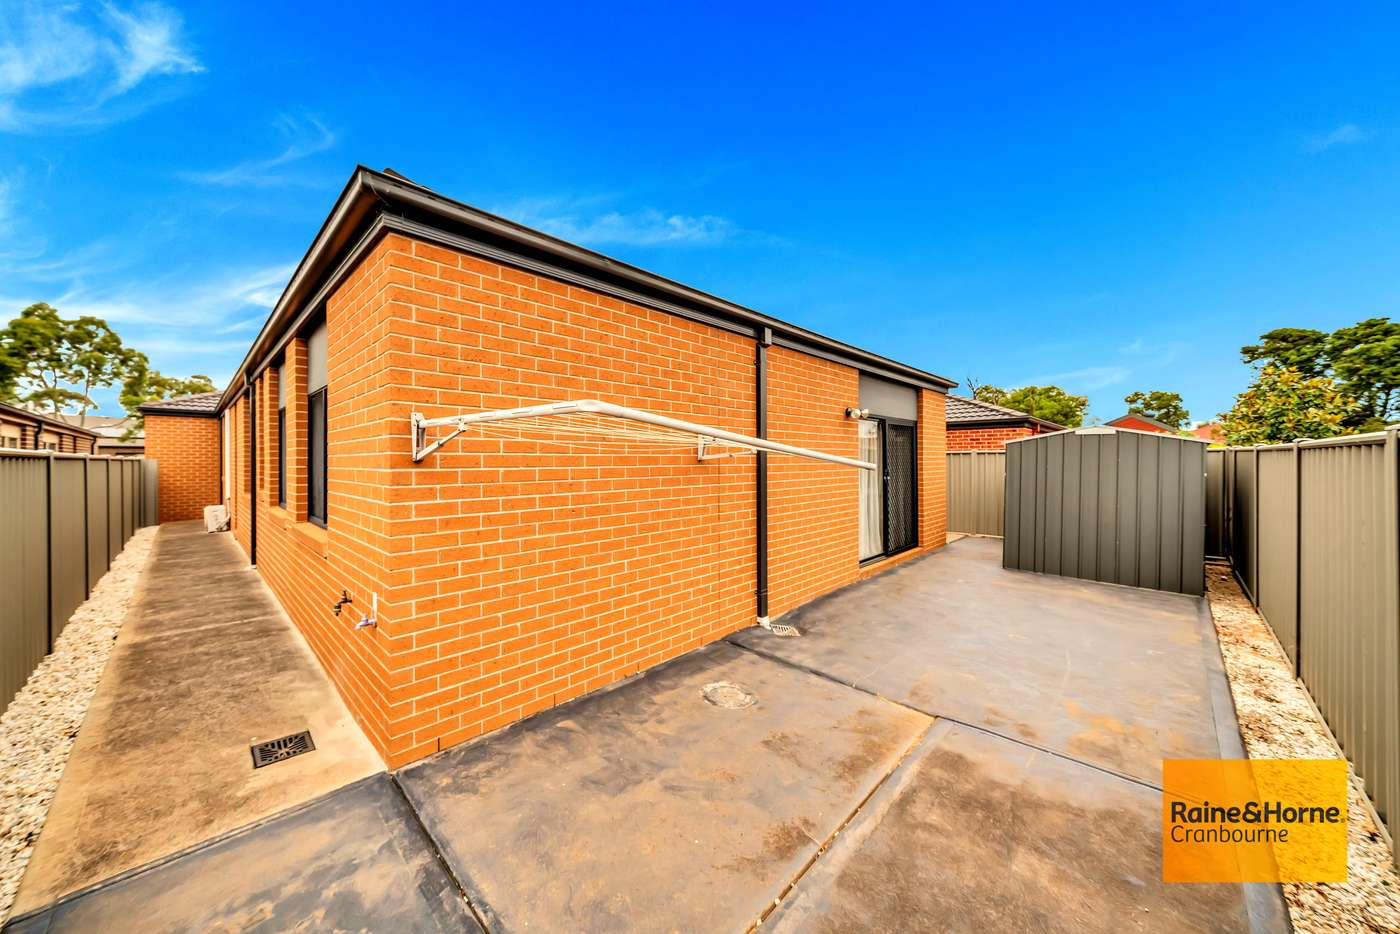 Seventh view of Homely house listing, 59 Challenger Circuit, Cranbourne East VIC 3977